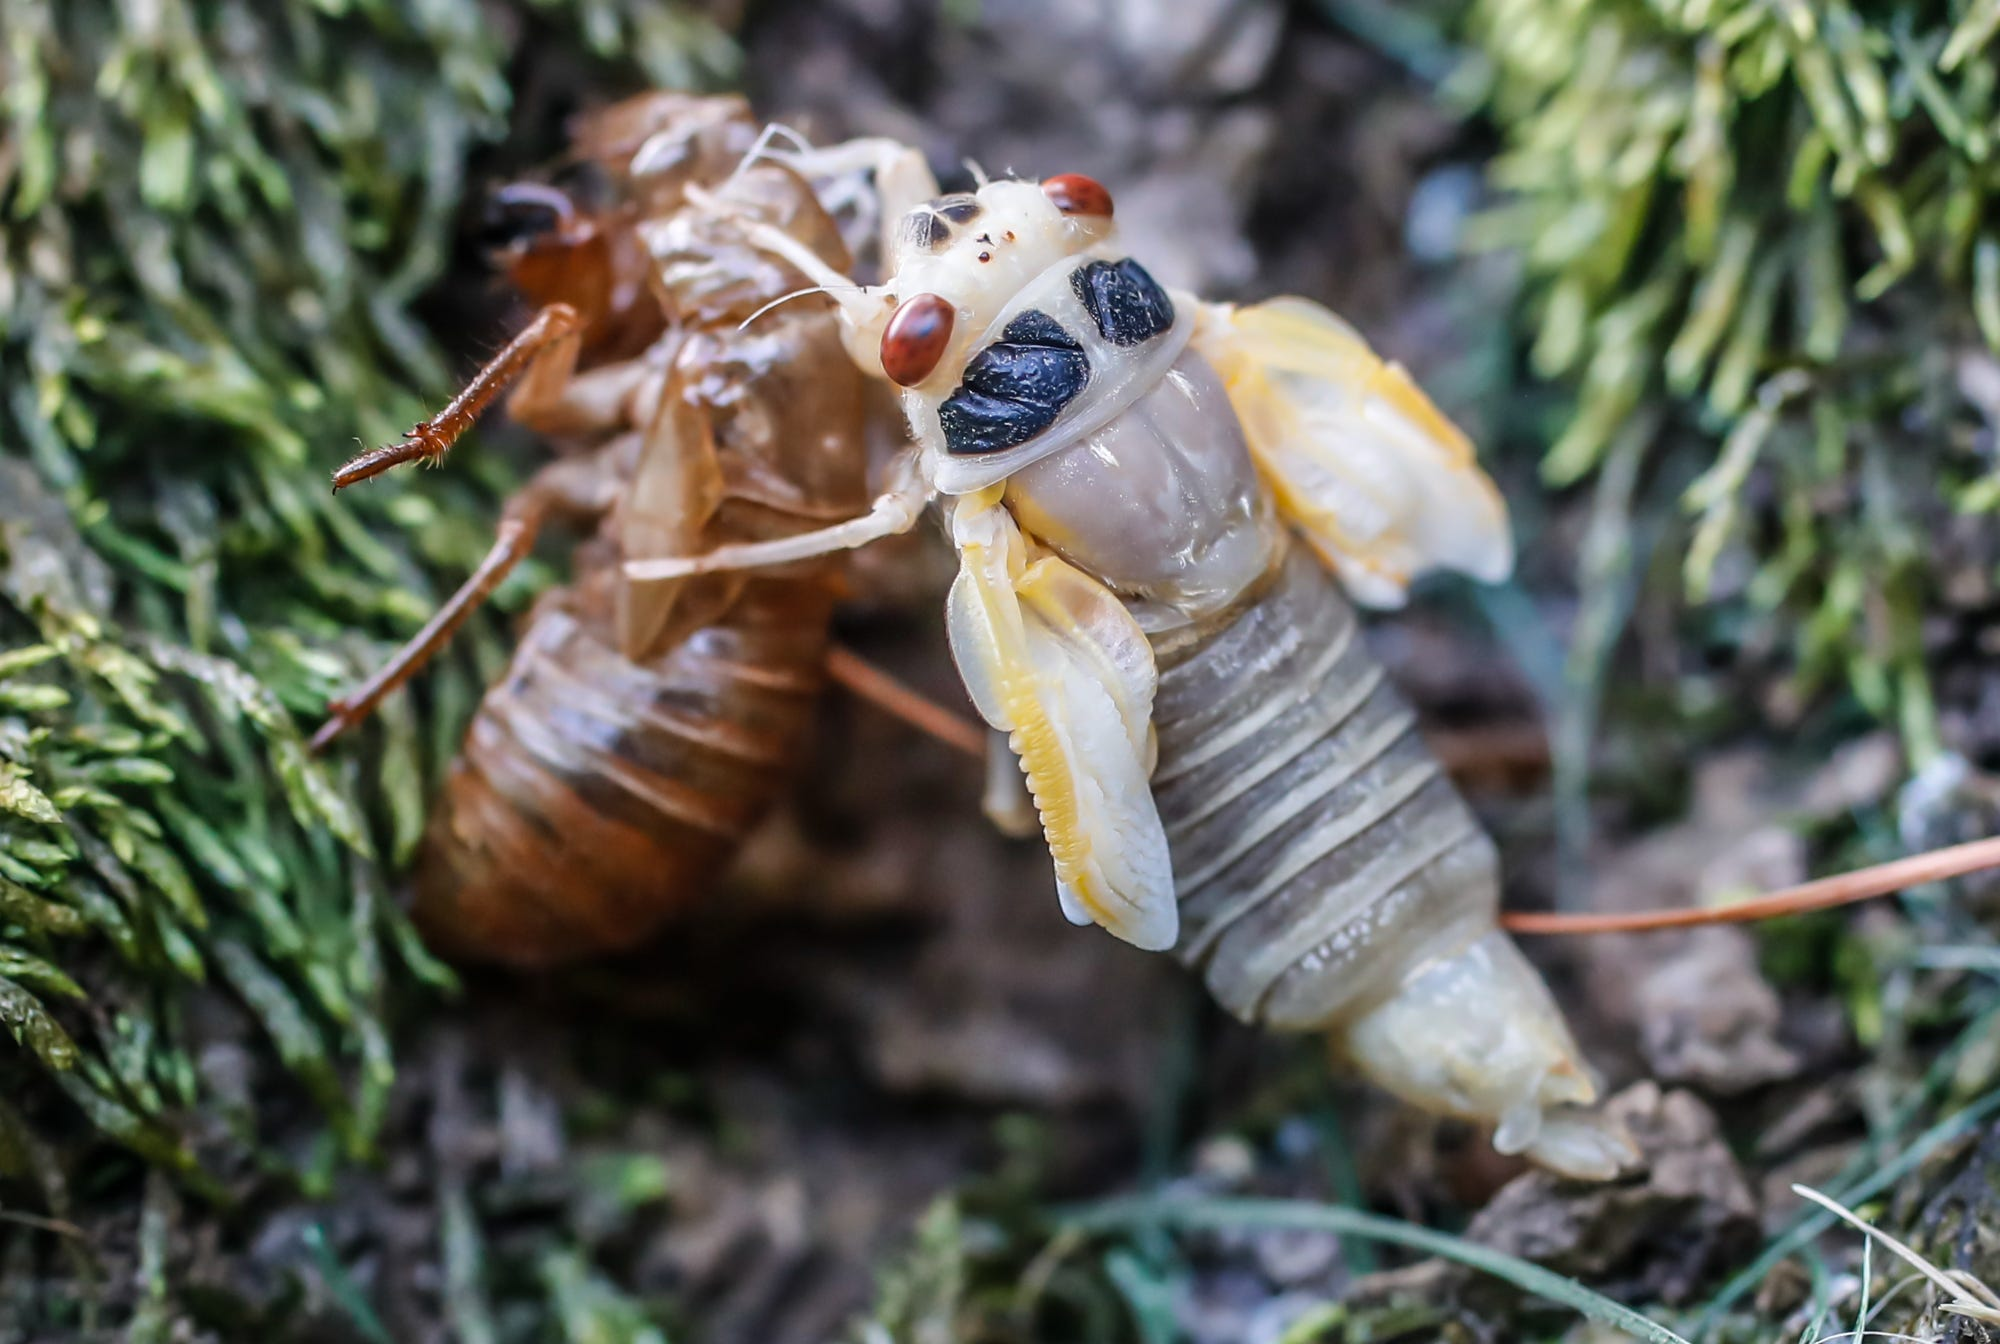 The Brood X cicadas have emerged in Central Indiana